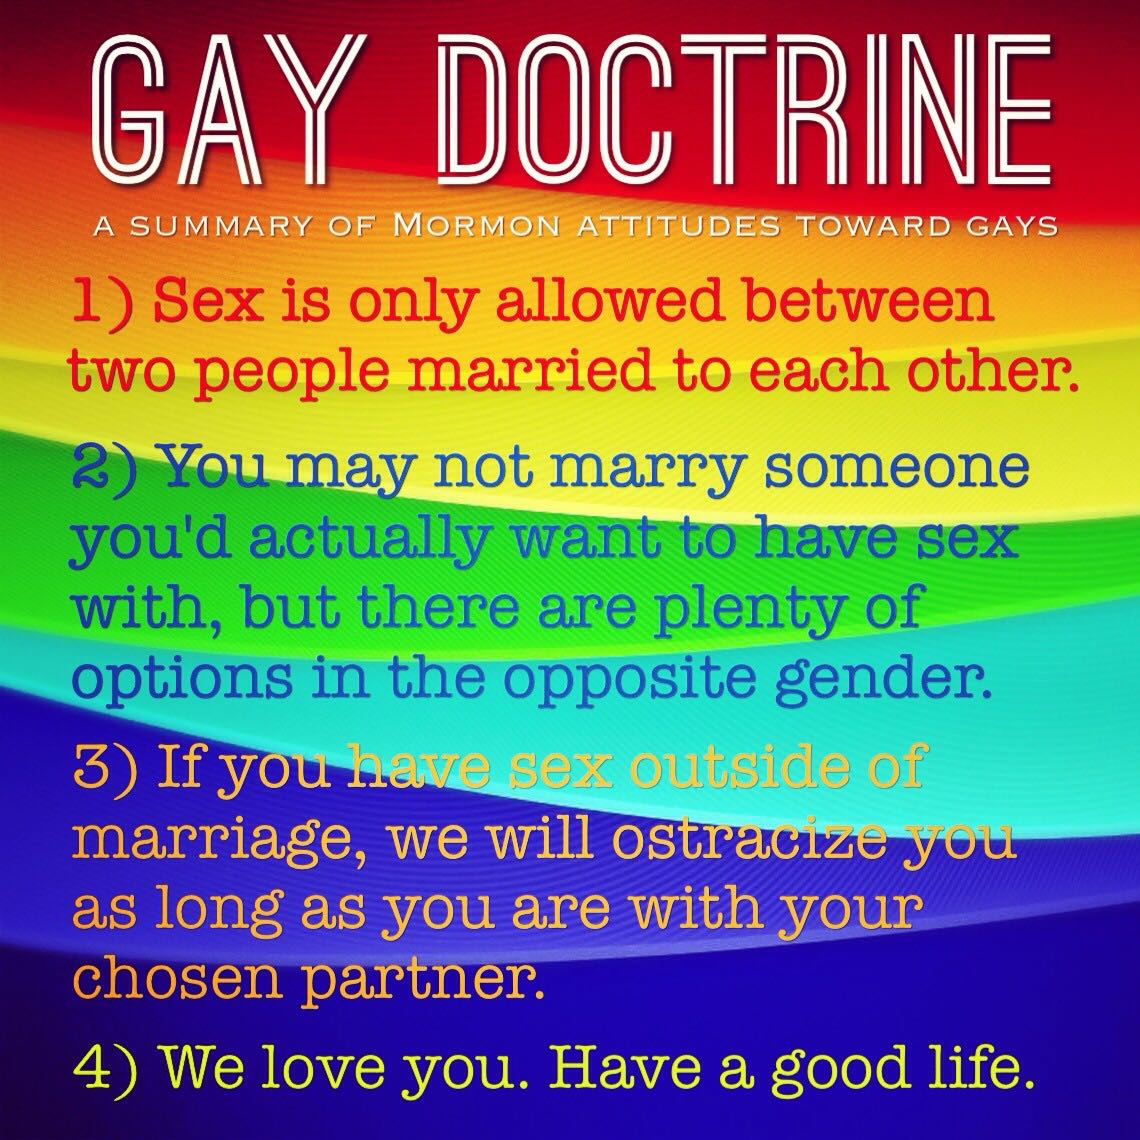 Gay doctrine